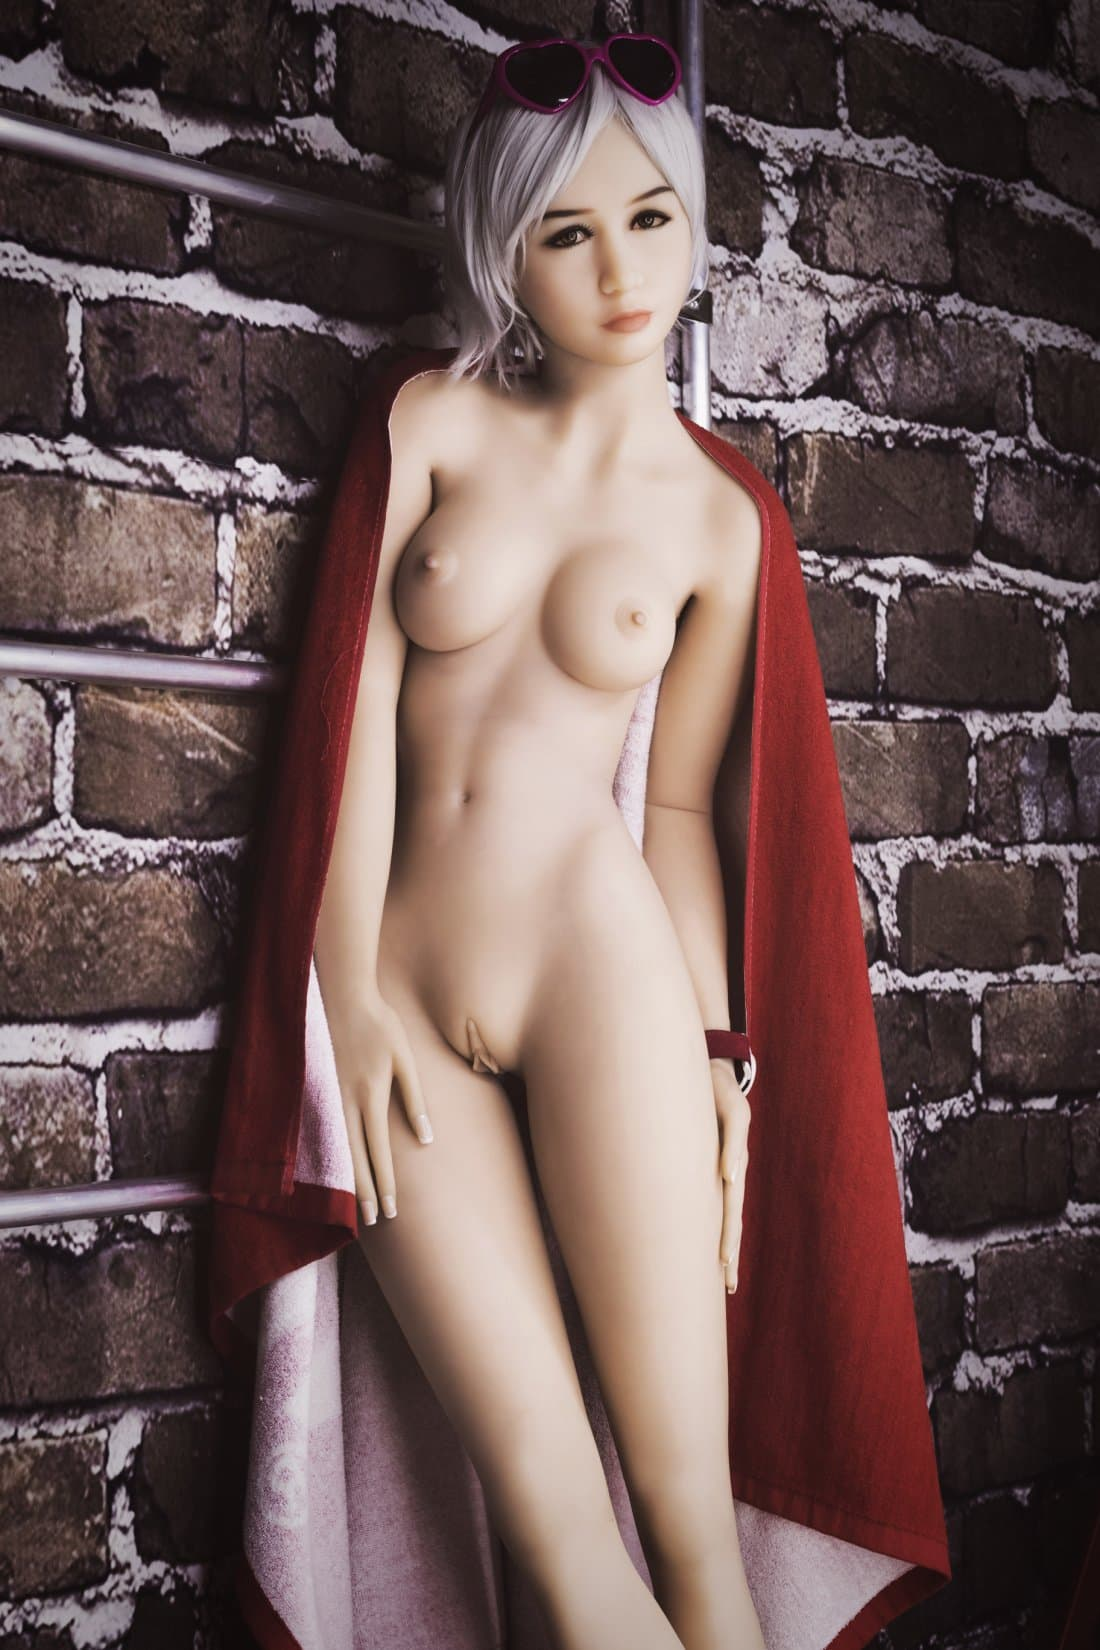 hattie 157cm blonde skinny flat chested tpe wm sex doll(8)